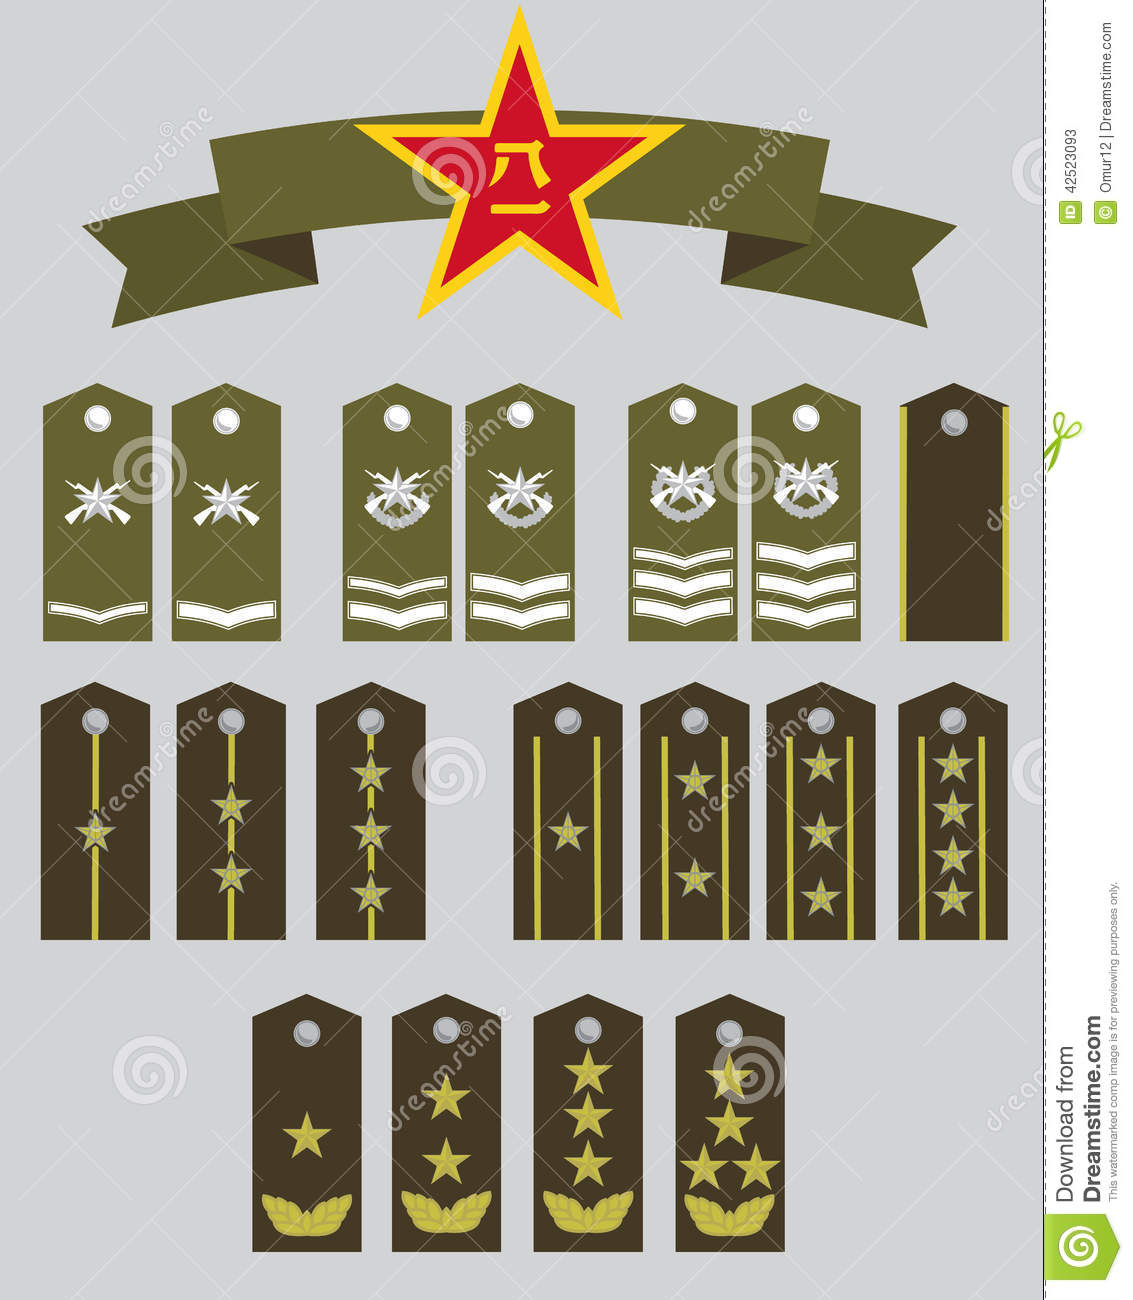 CPA Military Ranks And Star Stock Vector - Image: 42523093